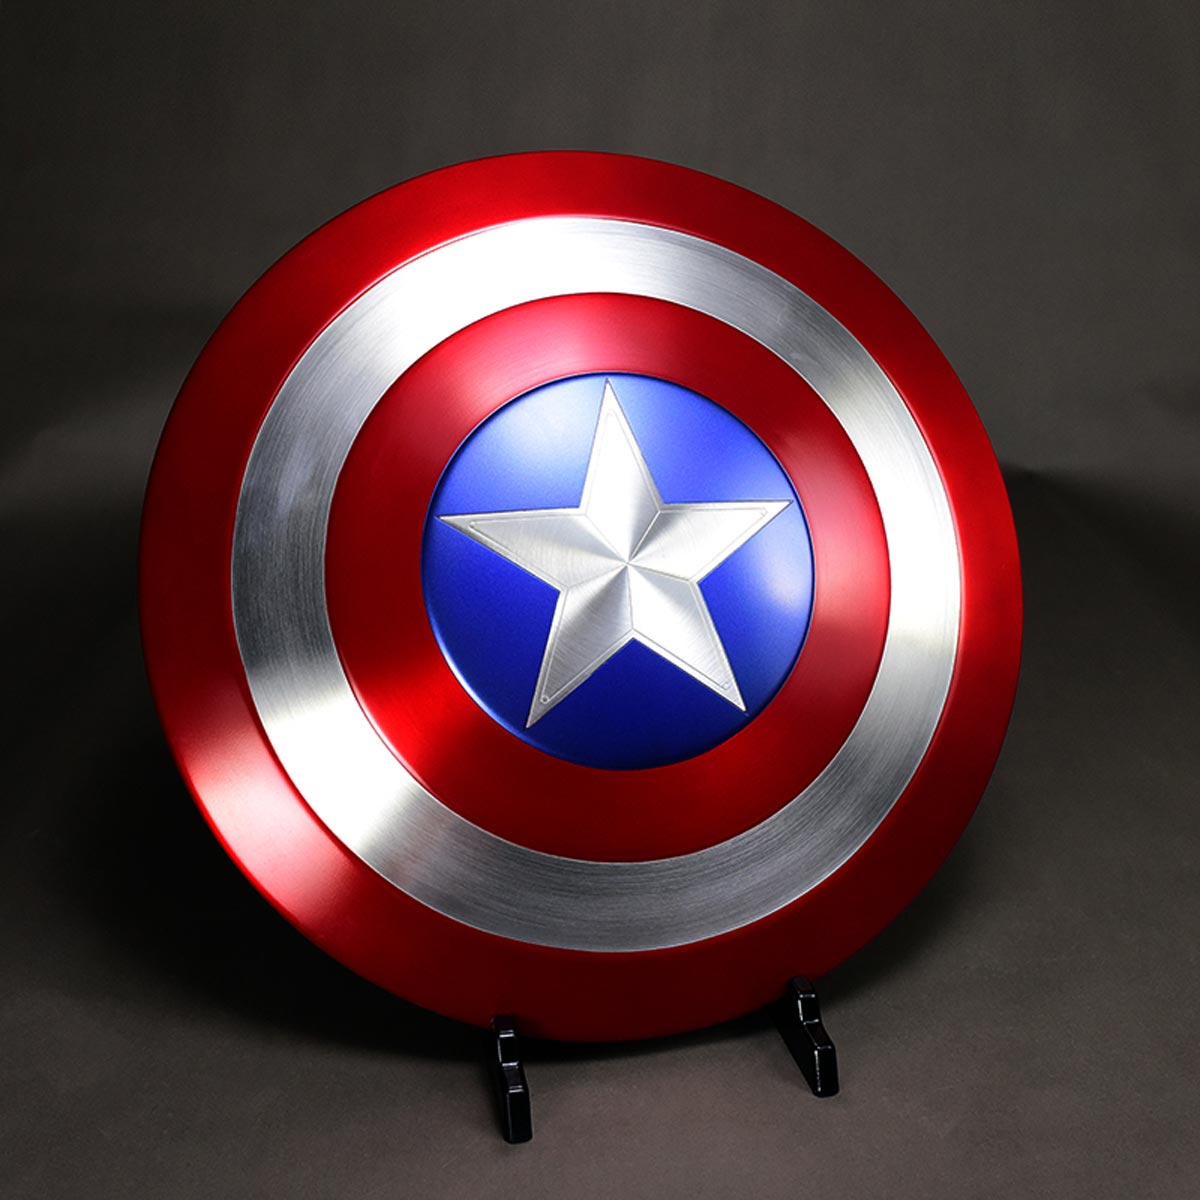 Details About Cool 11 The Avengers Captain America Shield Strong Metal Made Wood Box Ct1lhj